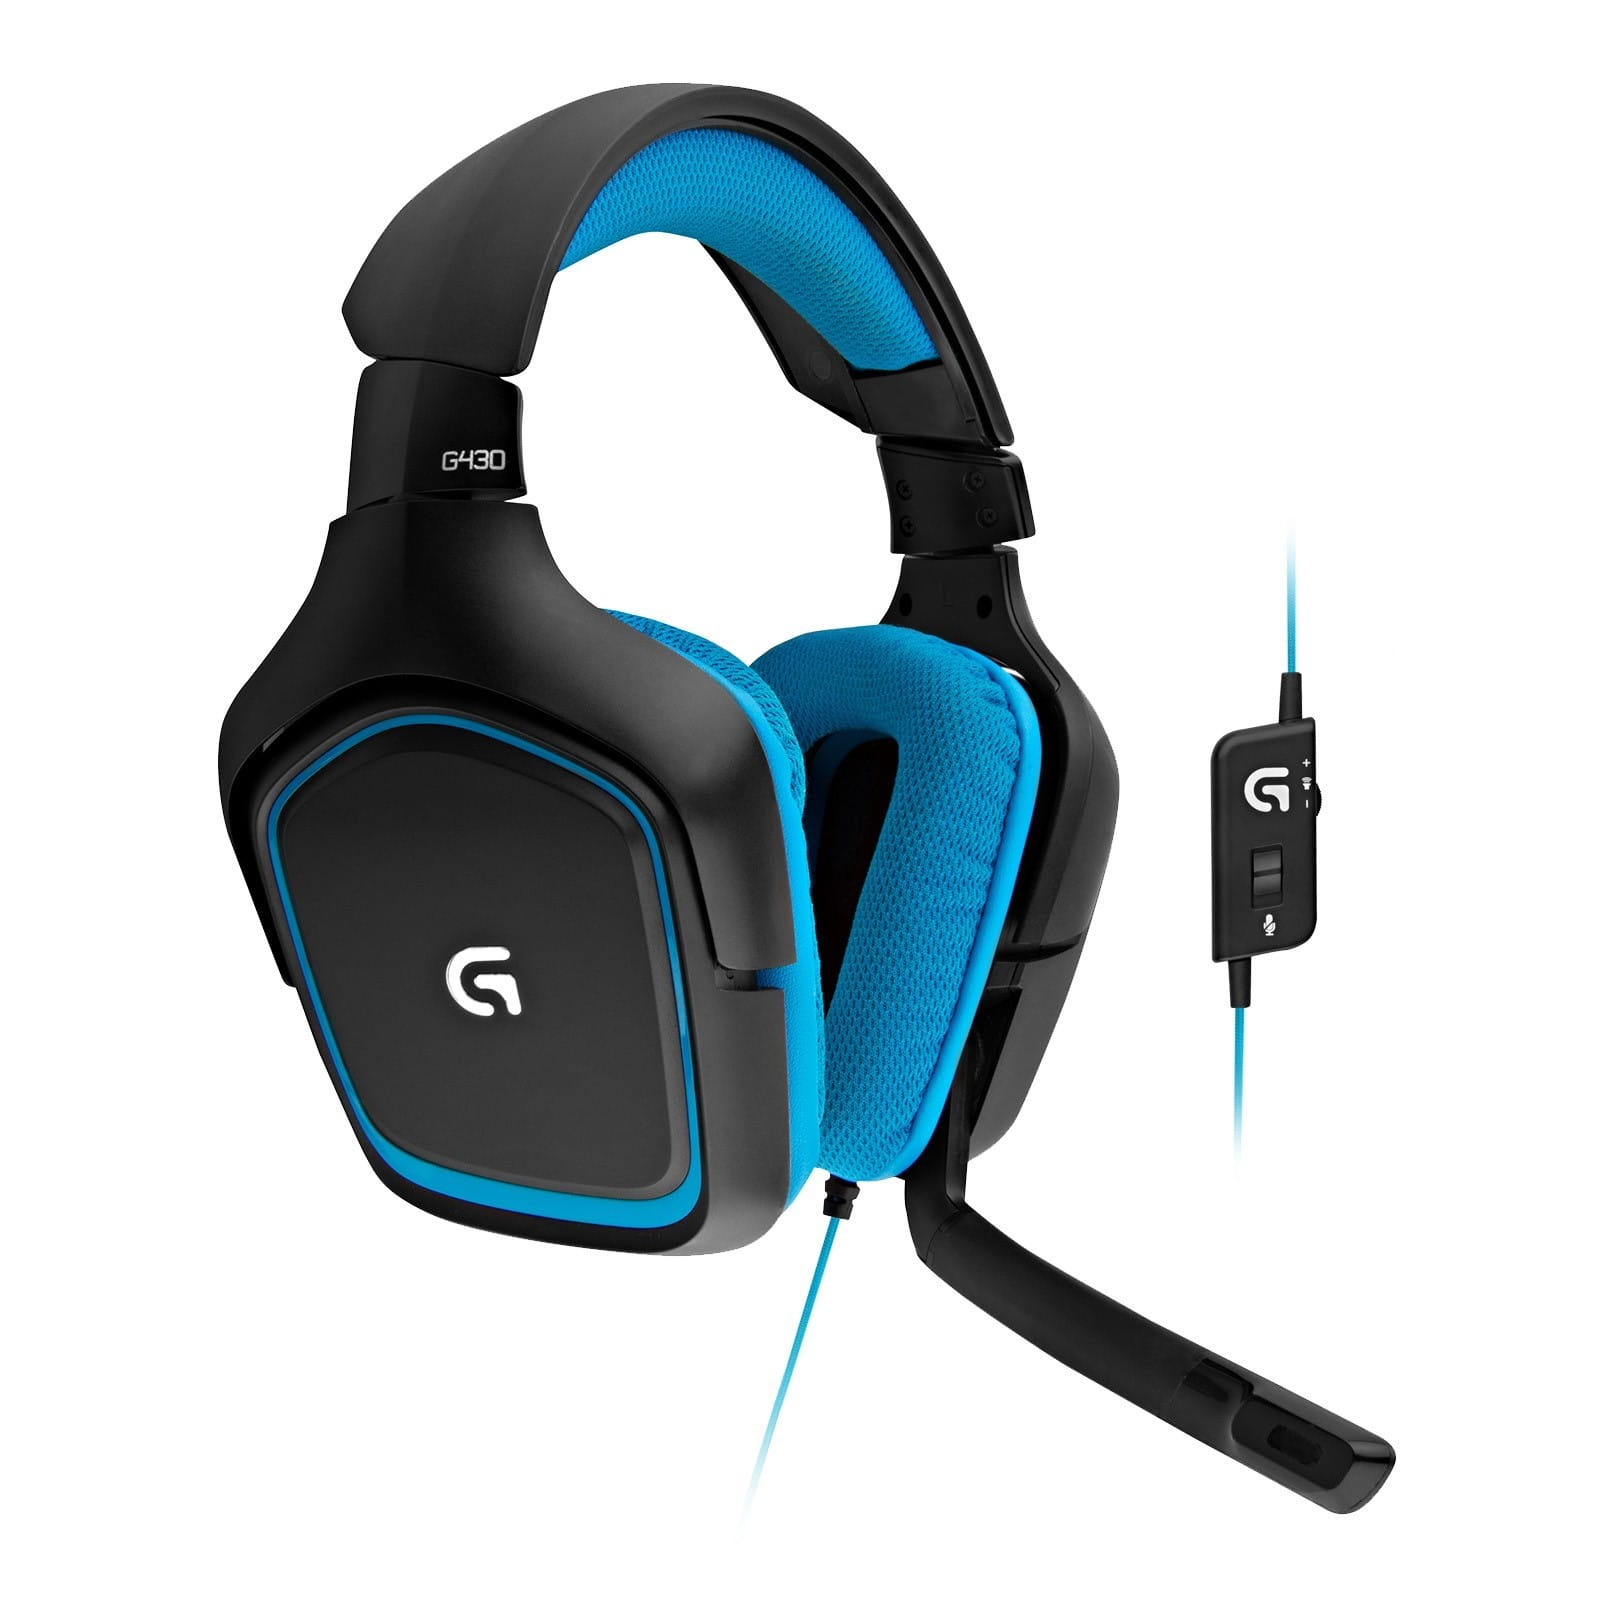 435e5f32b66 Logitech G430 Surround Sound Gaming Headset (Black/Blue ...